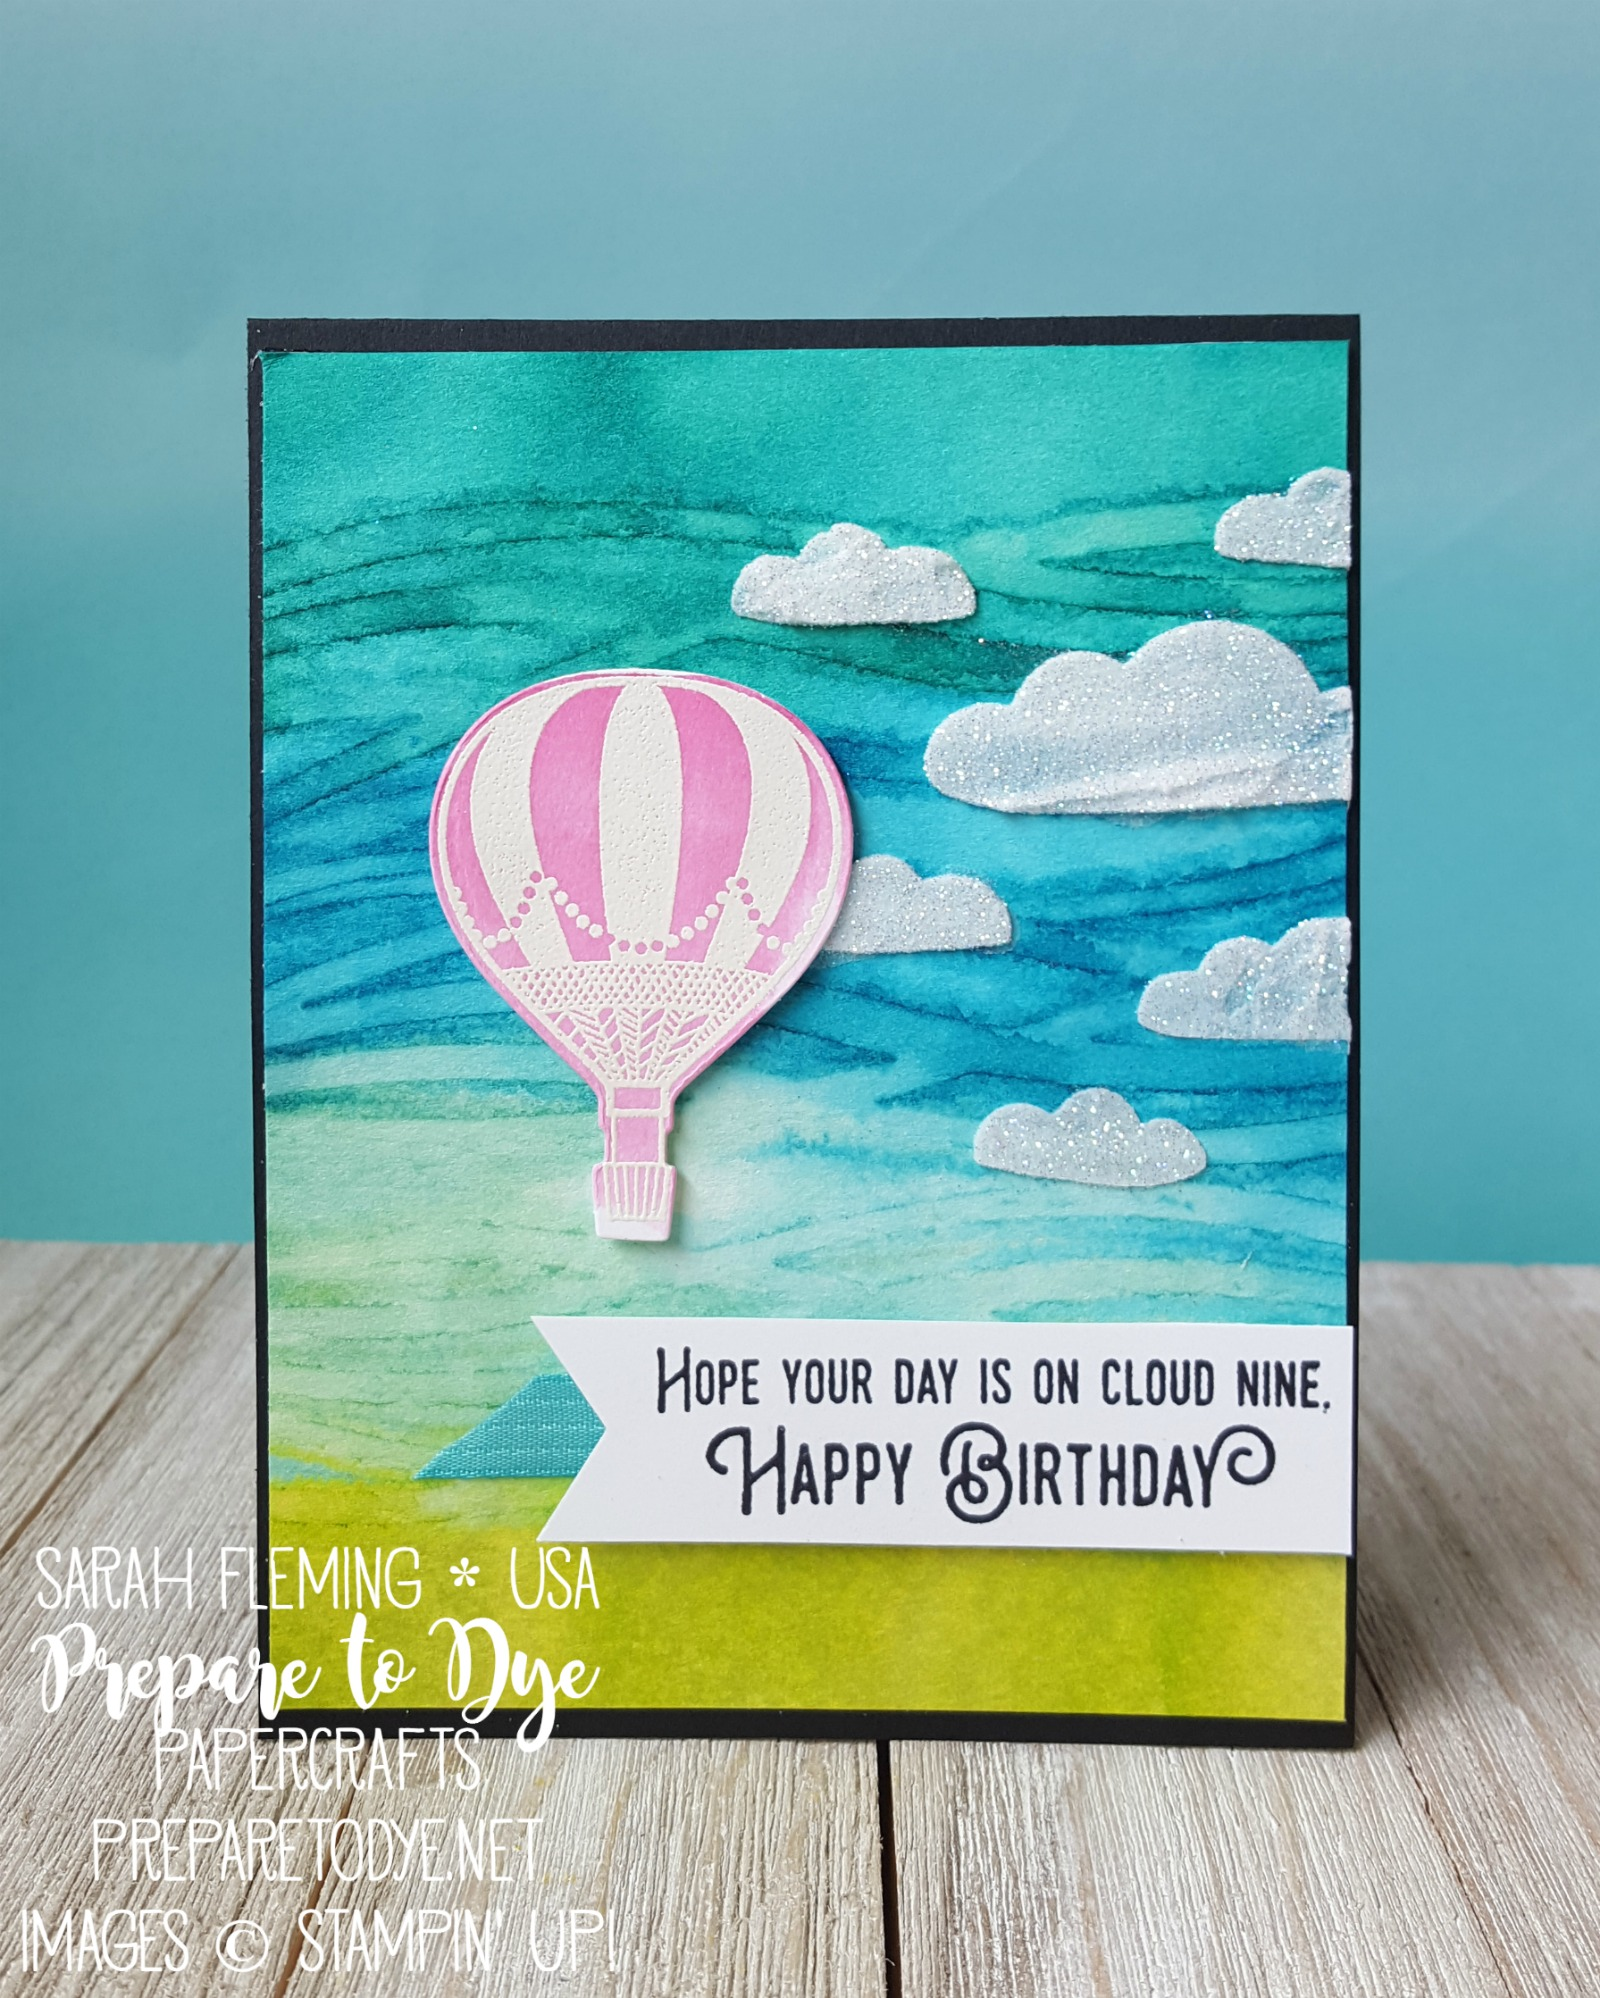 Stampin' Up! Lift Me Up stamp set with Up & Away thinlits - watercolor imprint background - embossing paste, texture paste - Sarah Fleming - Prepare to Dye Papercrafts